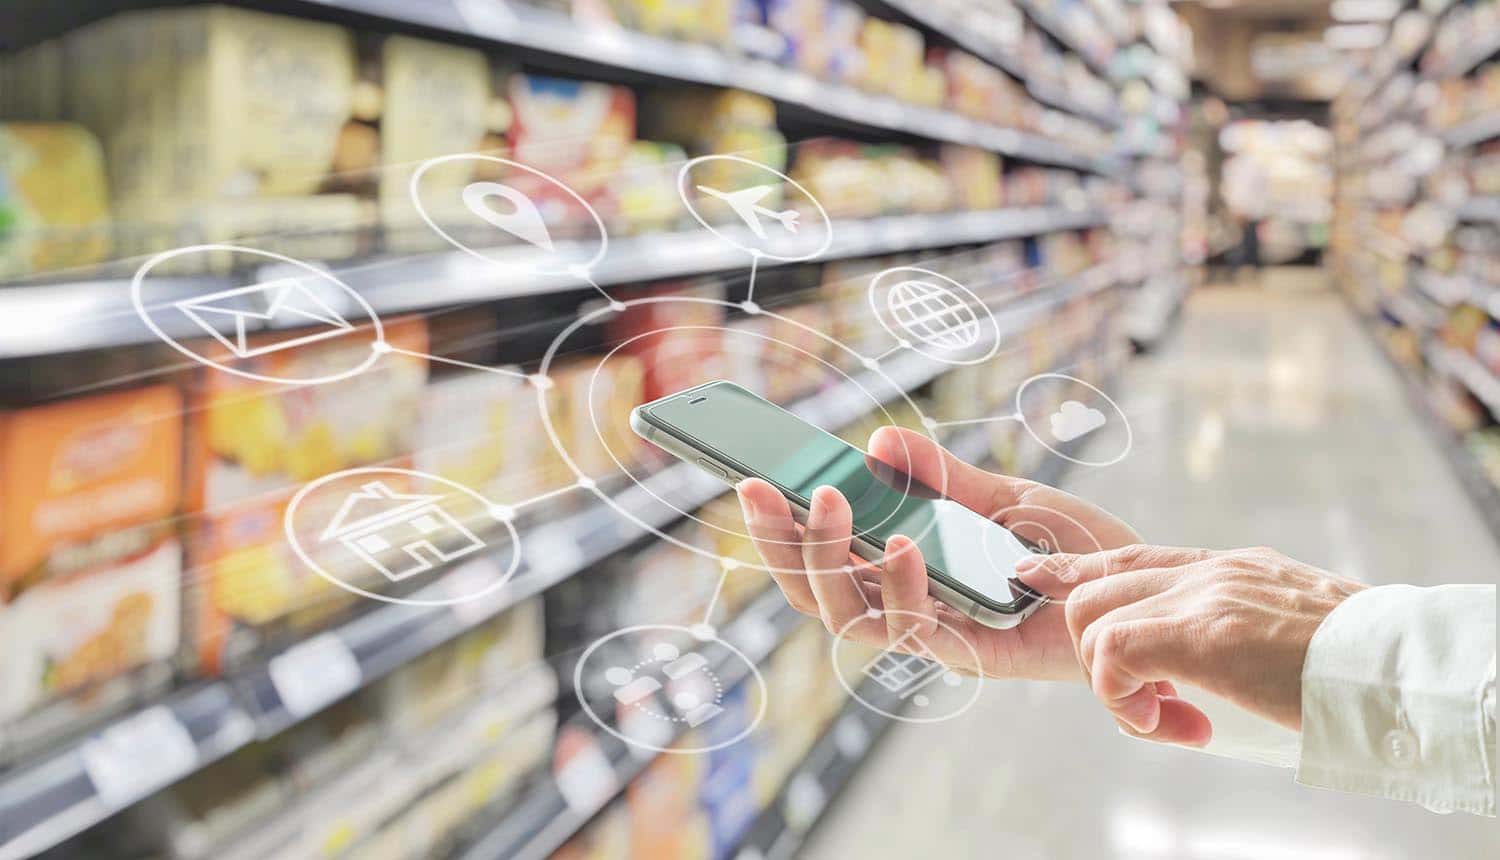 Man in supermarket showing use of IoT payments